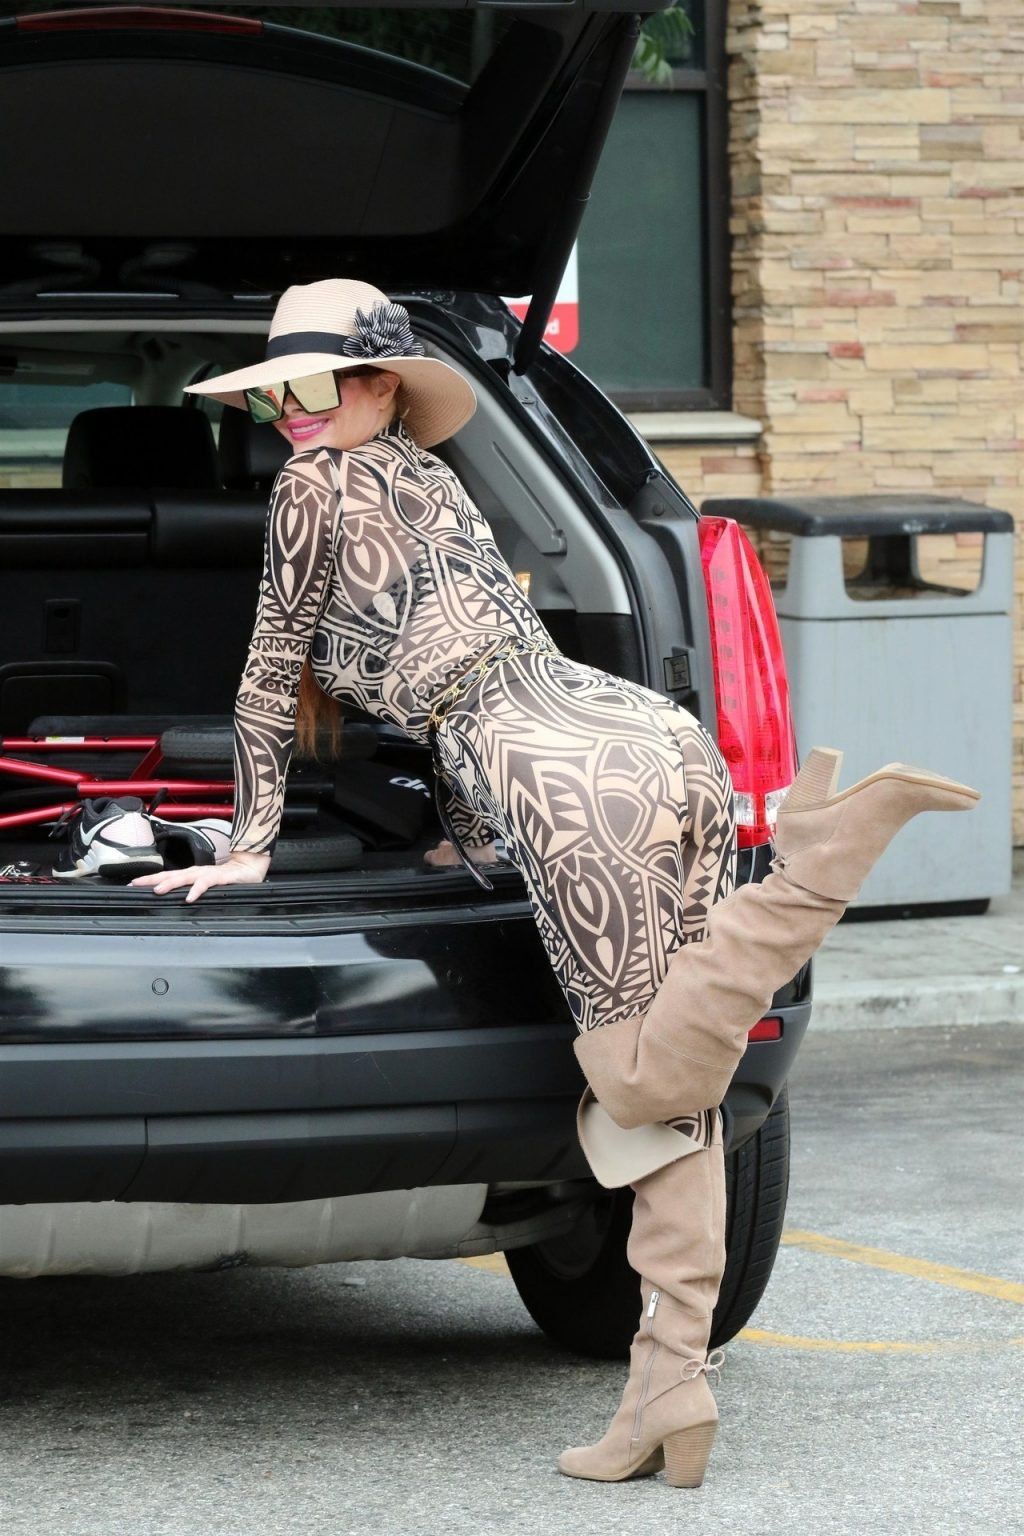 Phoebe Price Poses While Rocking a Huge Hat in LA (36 Photos)